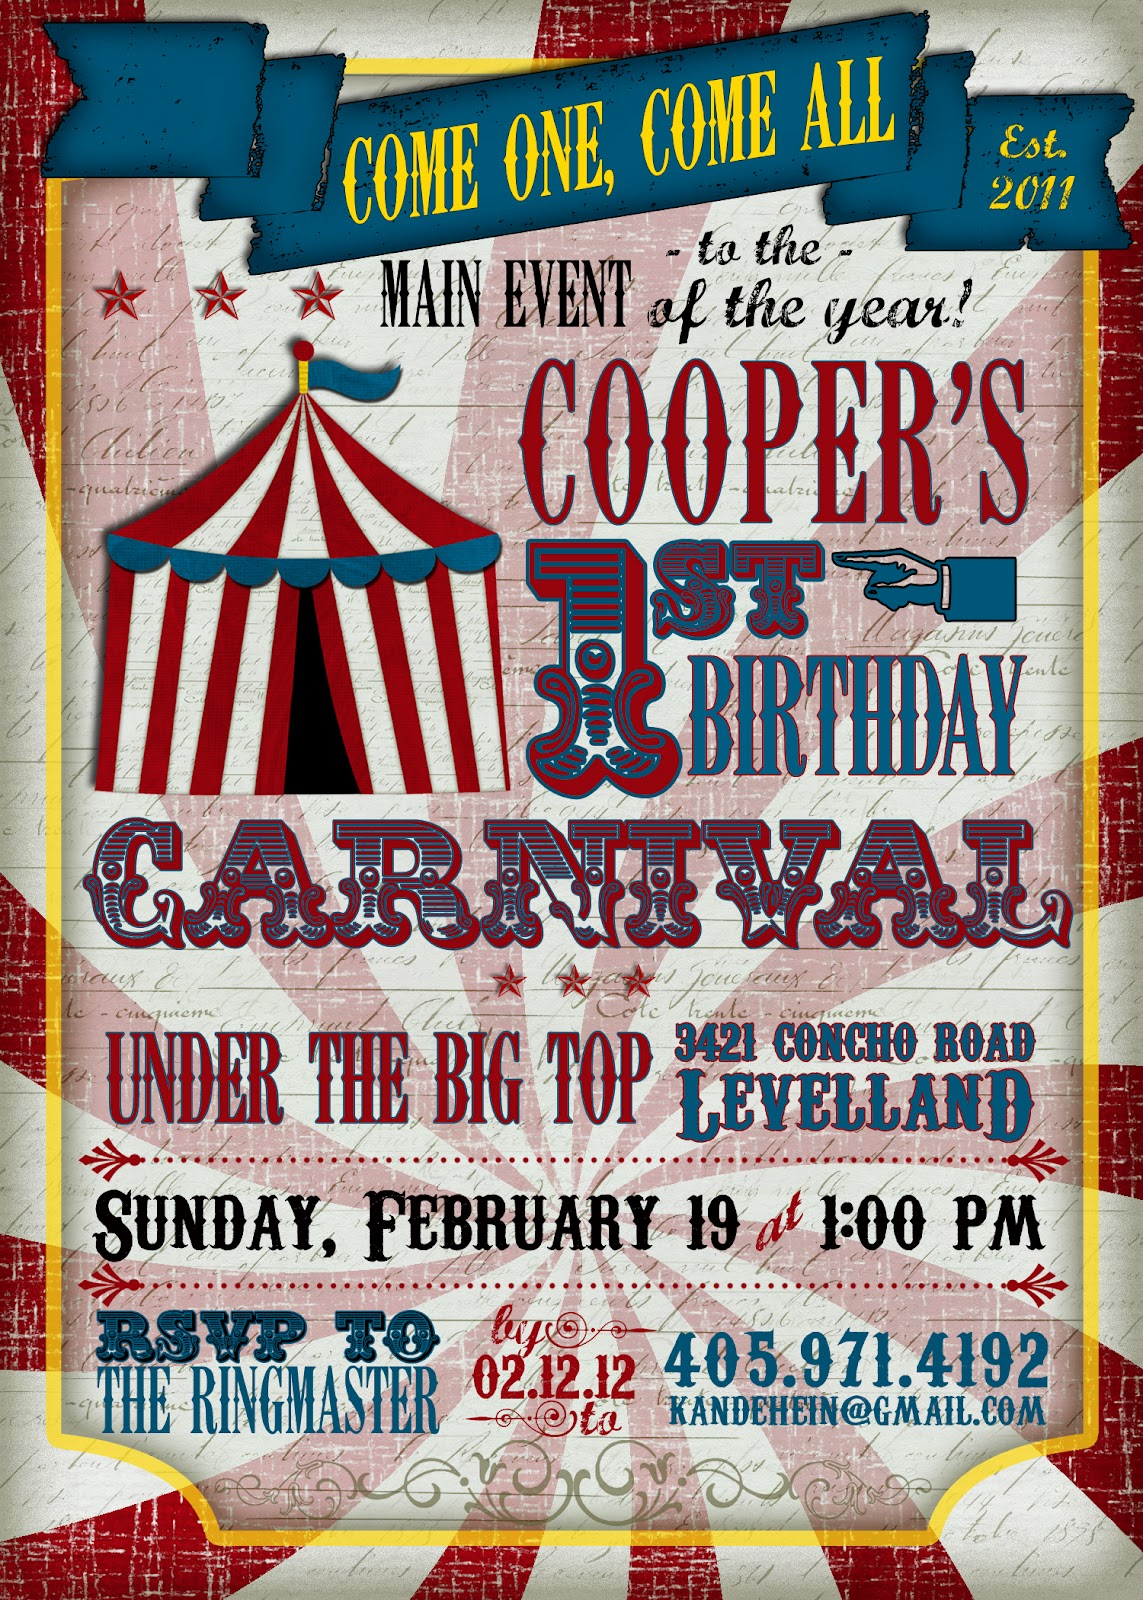 Coopers First Birthday Vintage Carnival Party